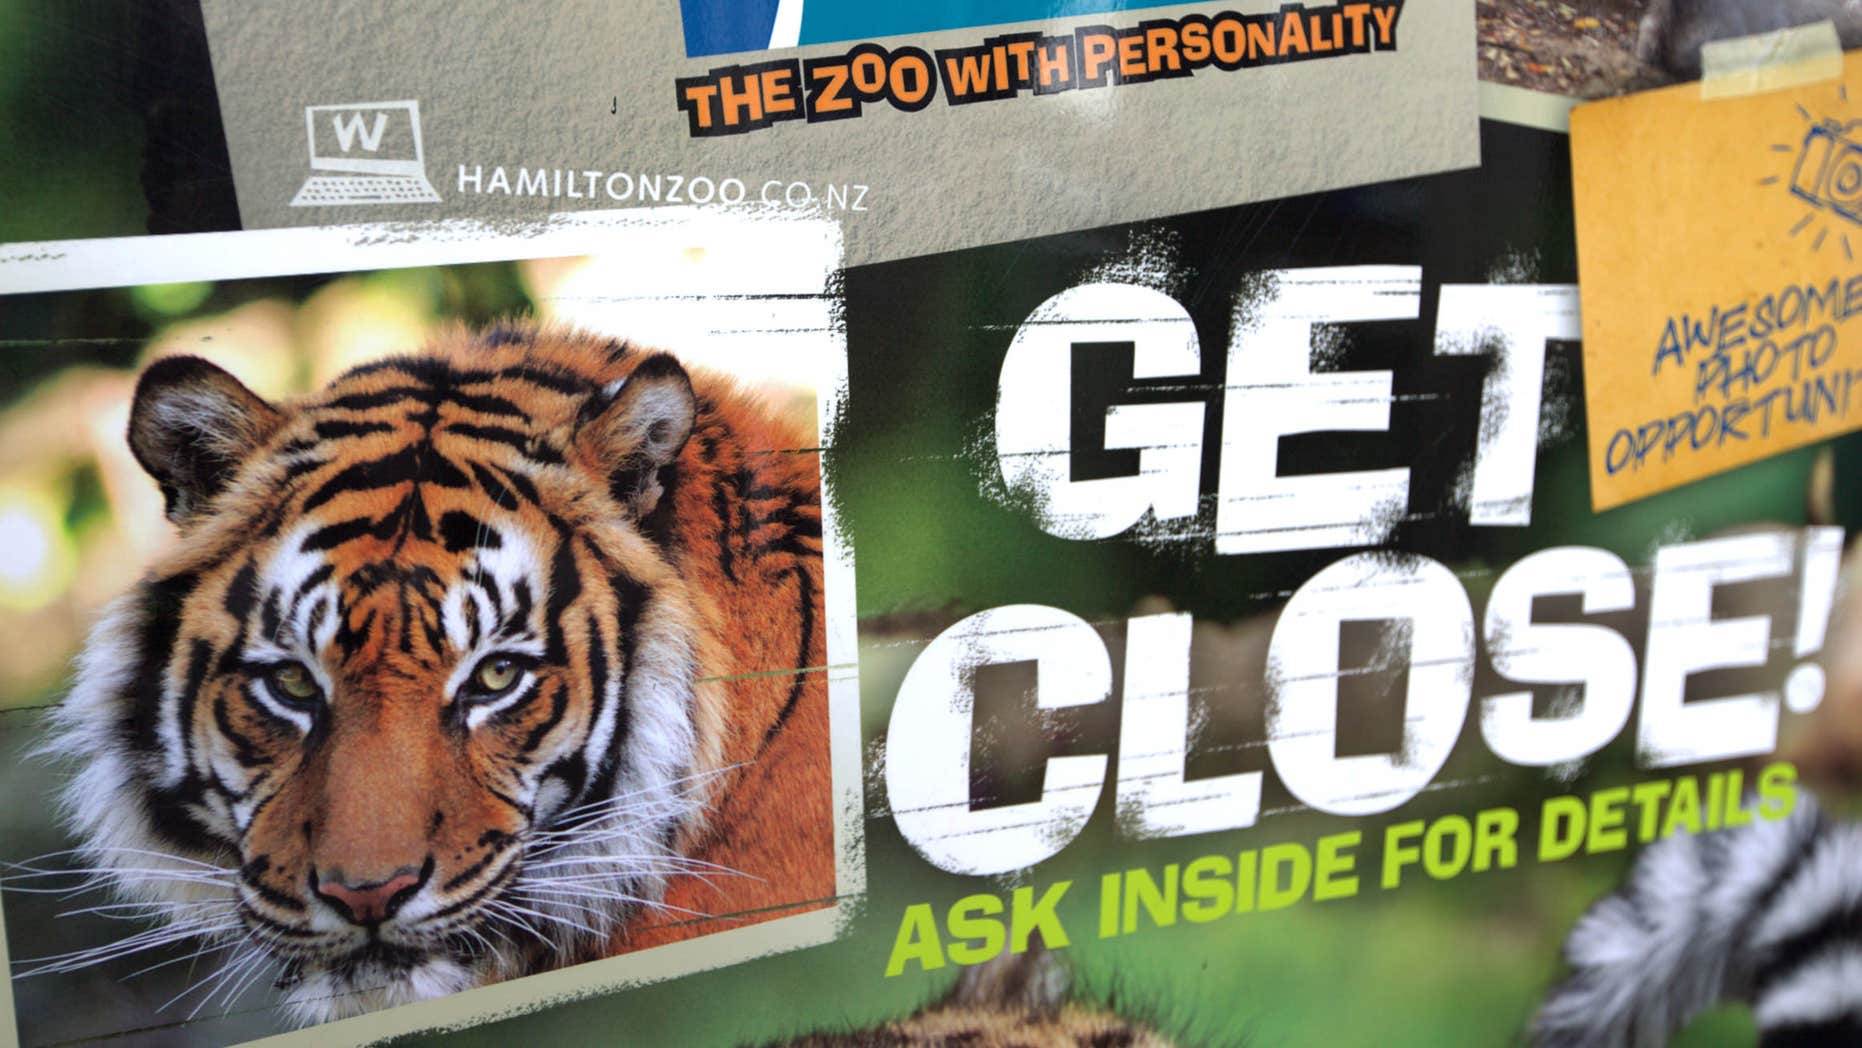 Sept. 20, 2015: A tiger advertising sign is seen outside Hamilton Zoo after a female zookeeper was killed by one of the tigers at the zoo in Hamilton, New Zealand.